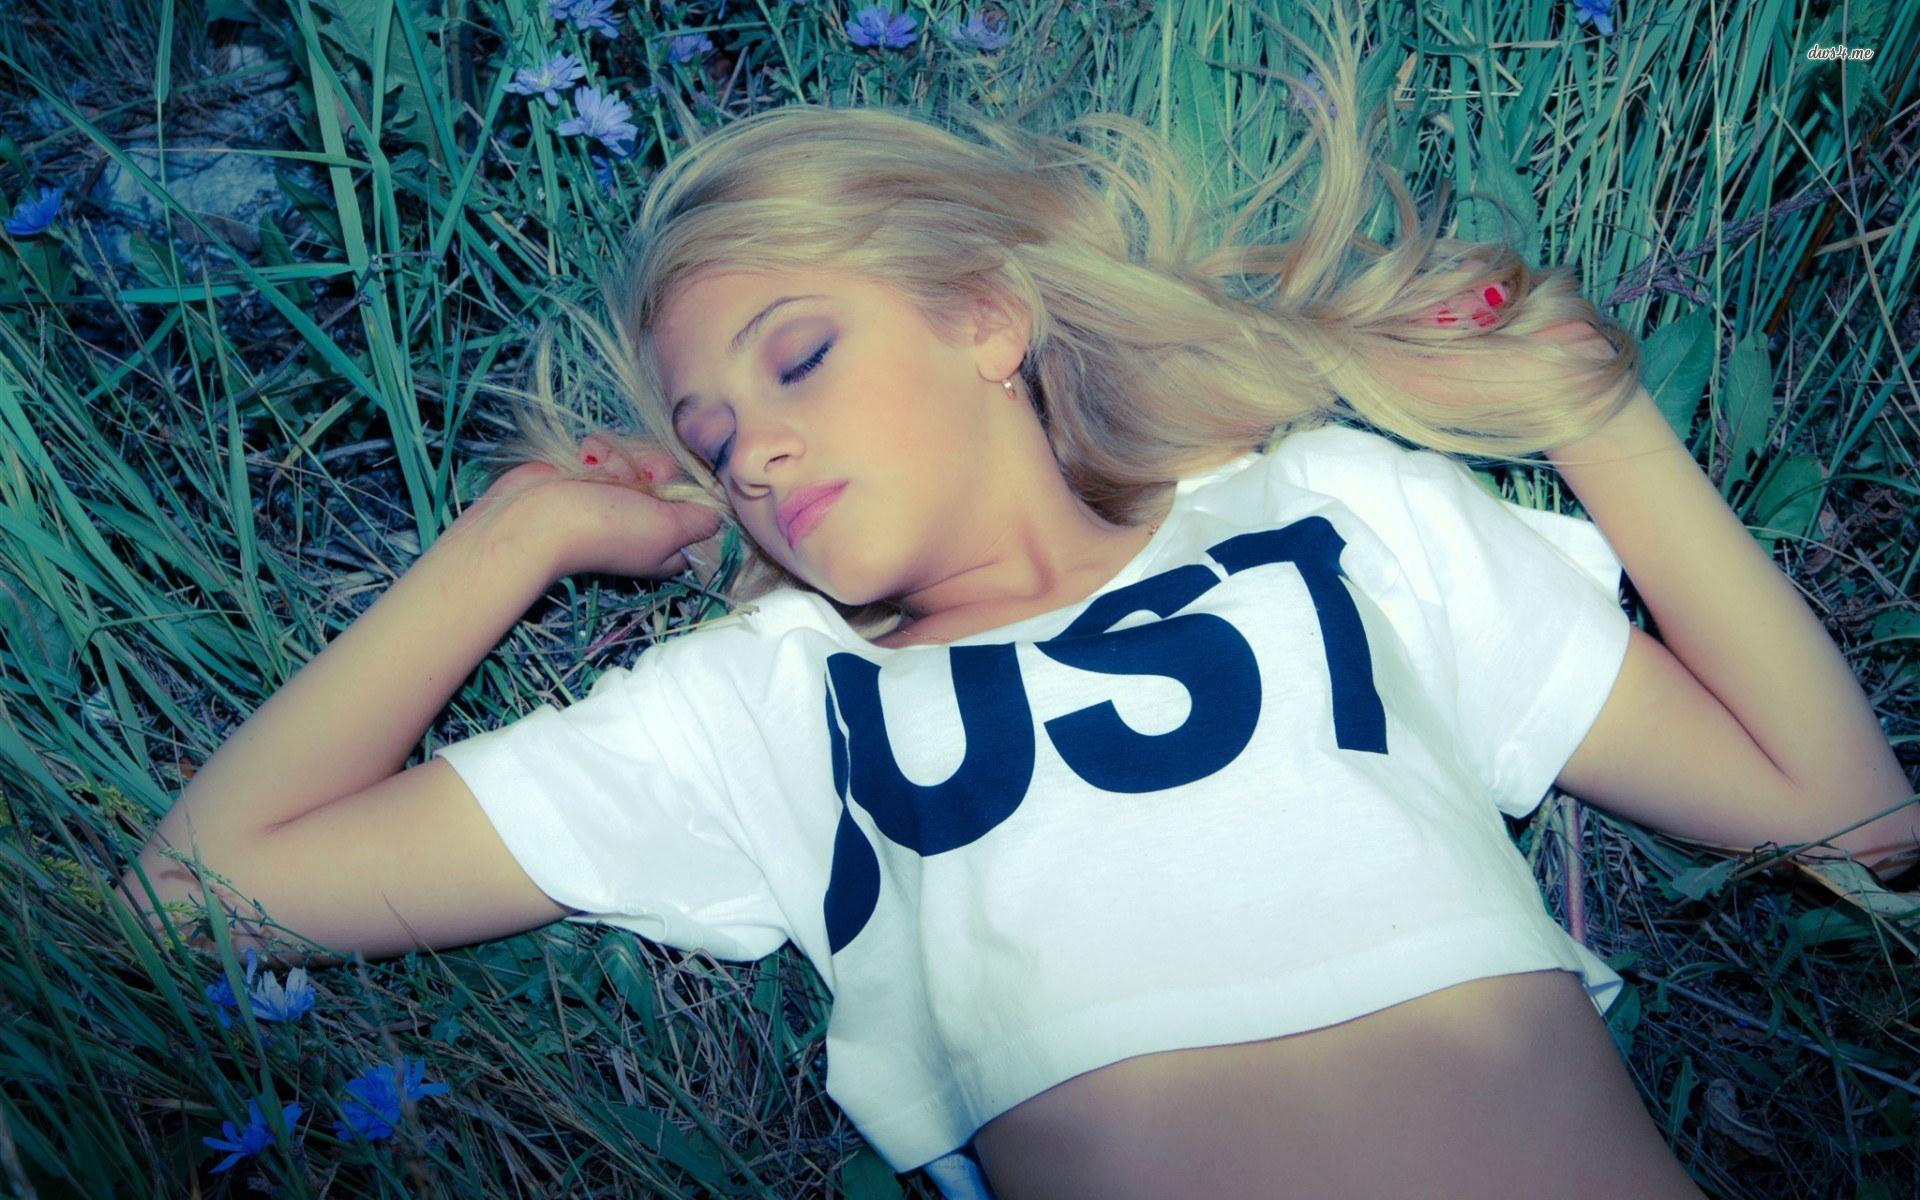 Beautiful woman laying in the grass